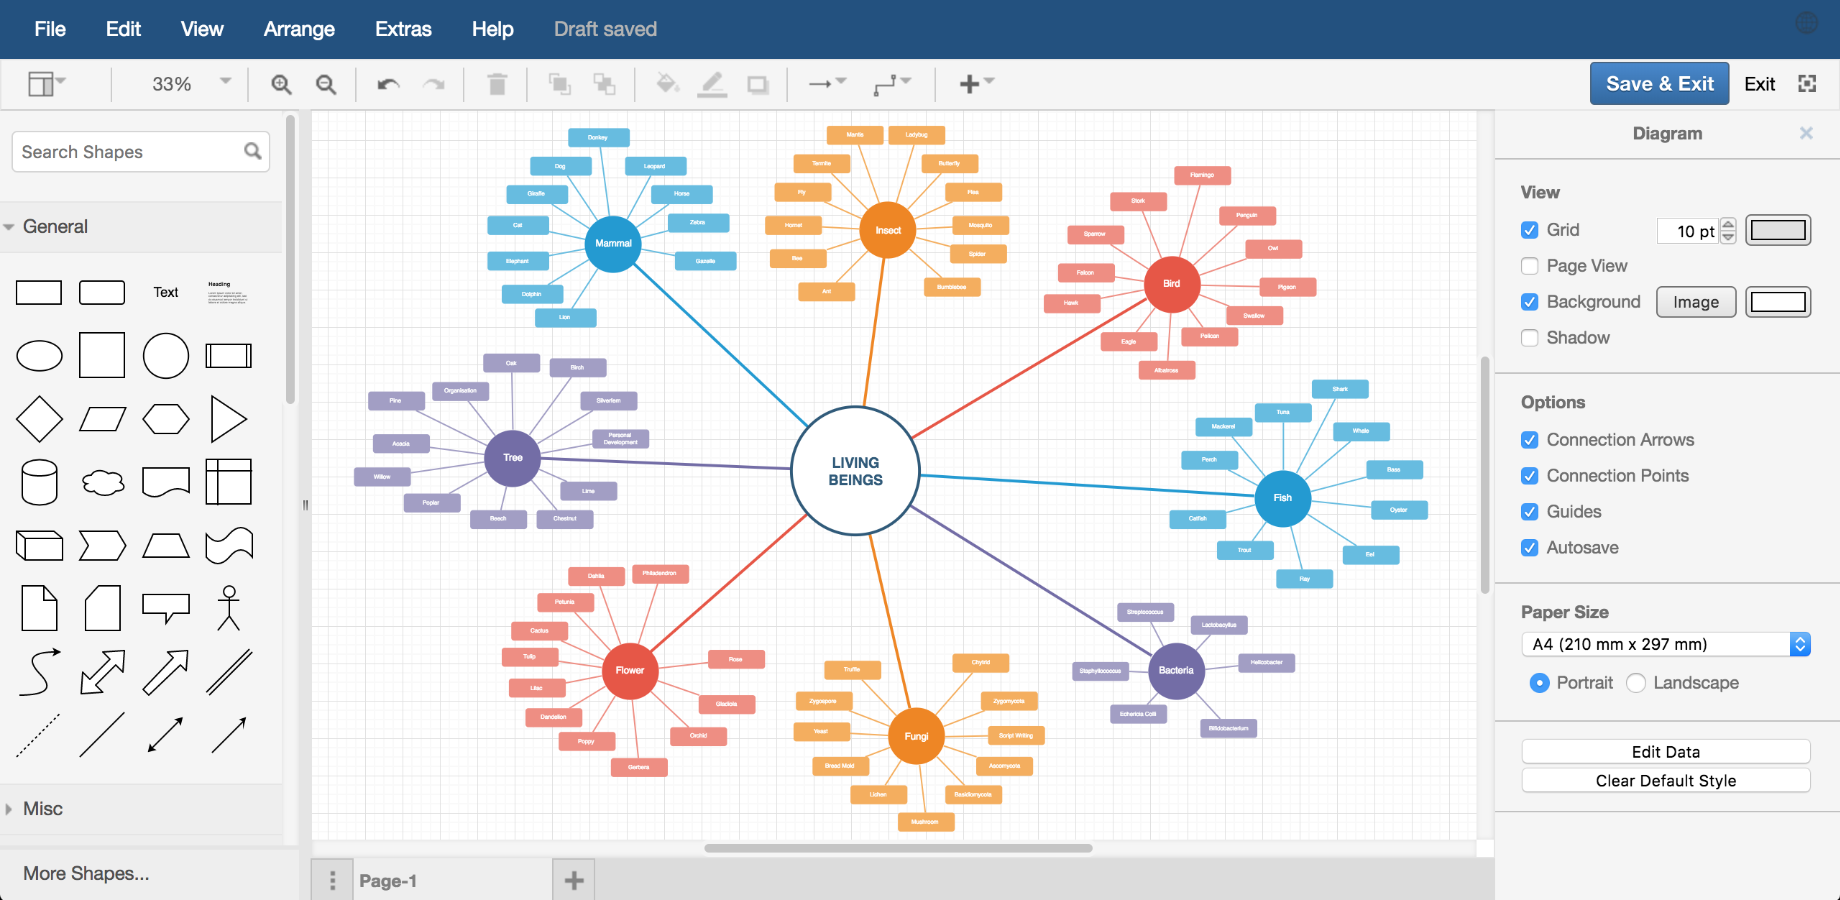 Examples draw mind maps are ideal for quickly jotting down your thoughts about a concept or problem and organizing the information into related ccuart Images